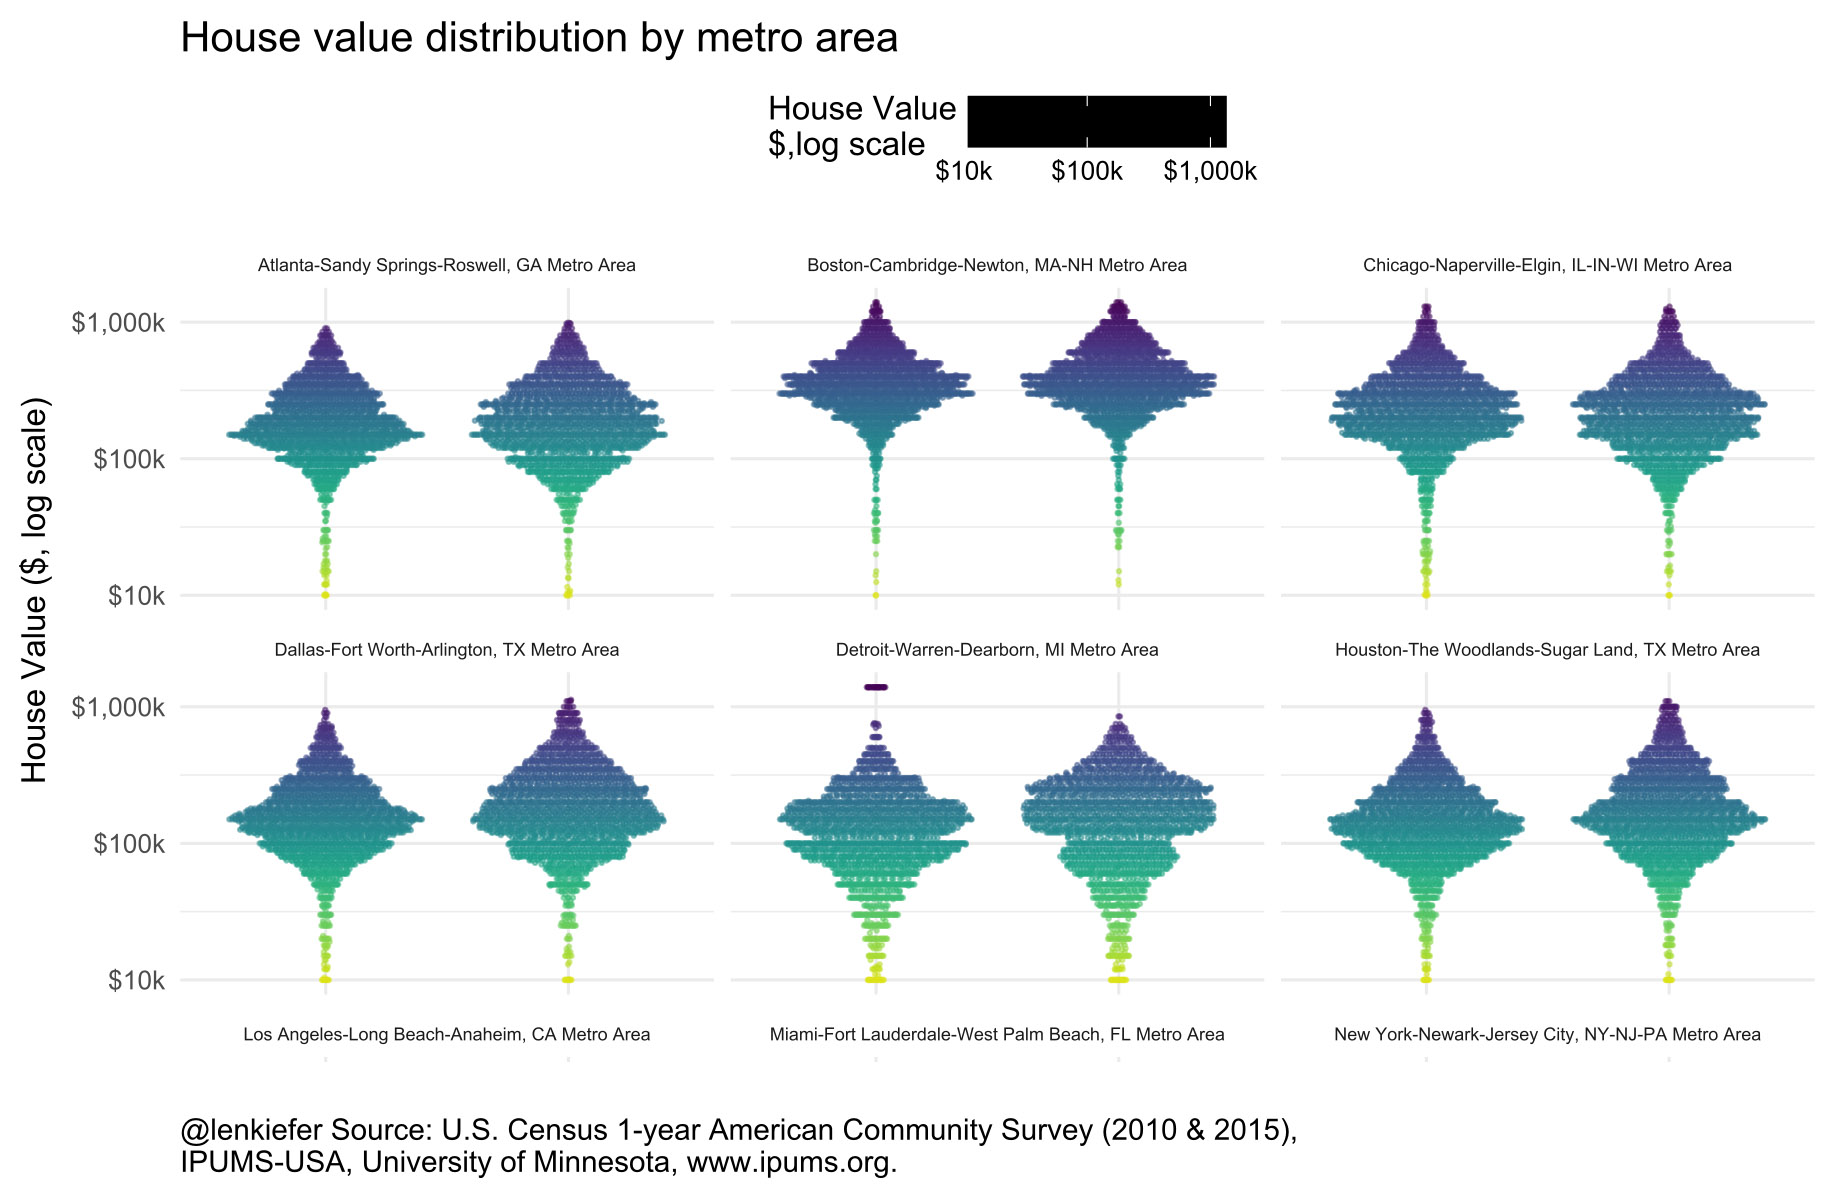 Visualizing housing value distributions by metro